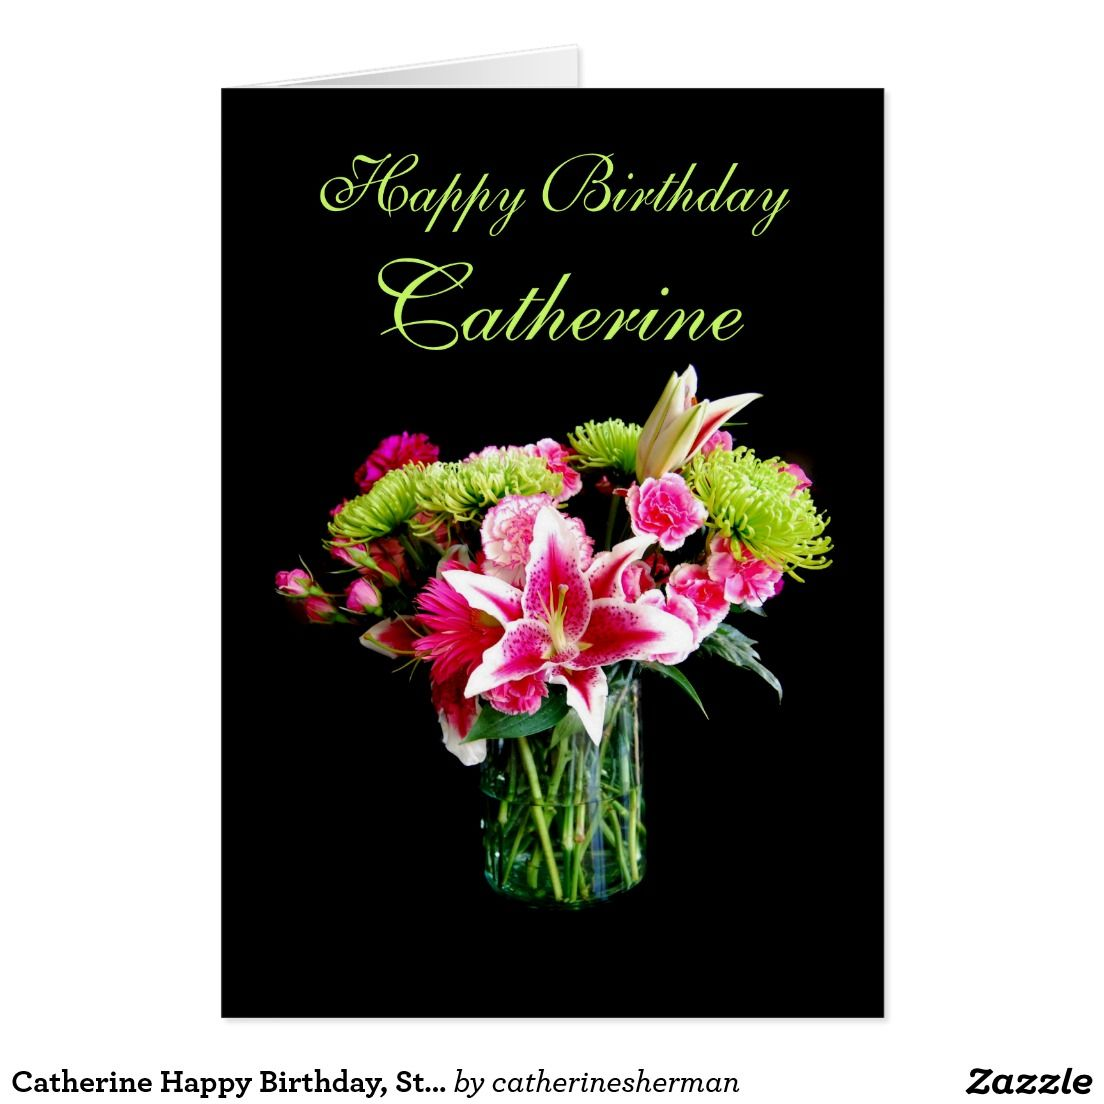 Catherine Happy Birthday, Stargazer Lily Bouquet Card, You can customize to any name.